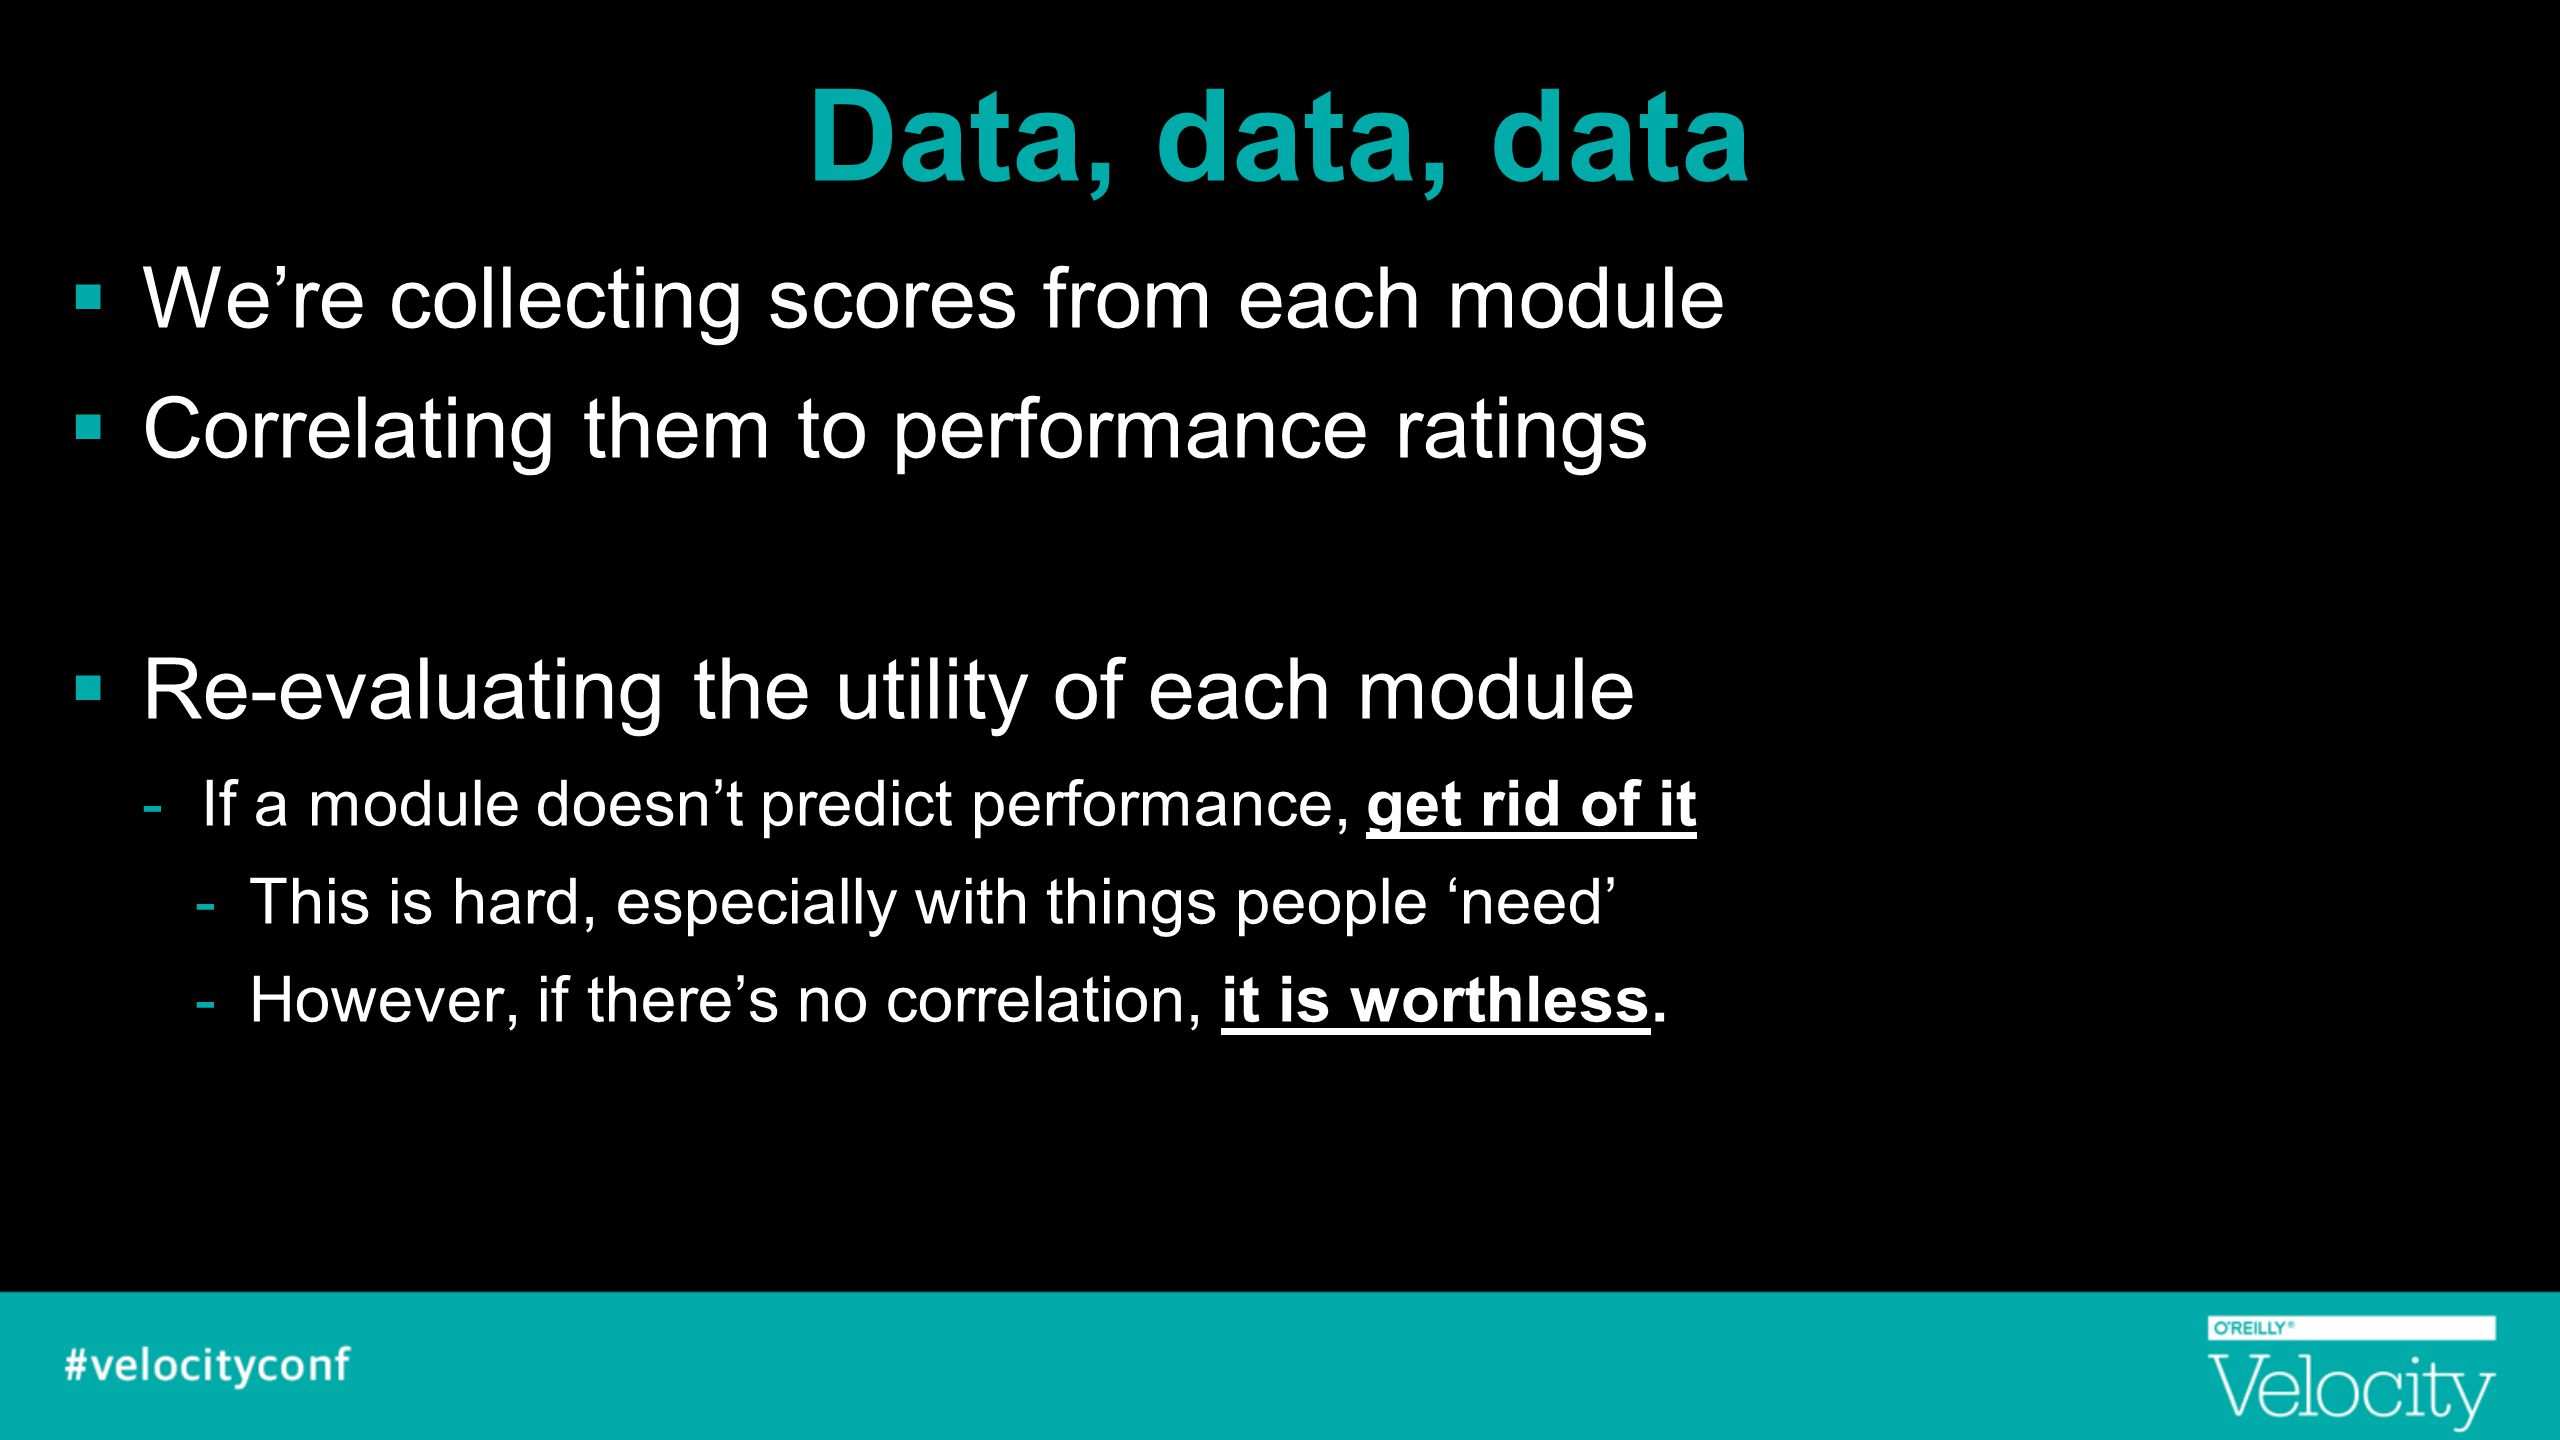 Data, data, data  We're collecting scores from each module  Correlating them to performance ratings  Re-evaluating the utility of each module -If a